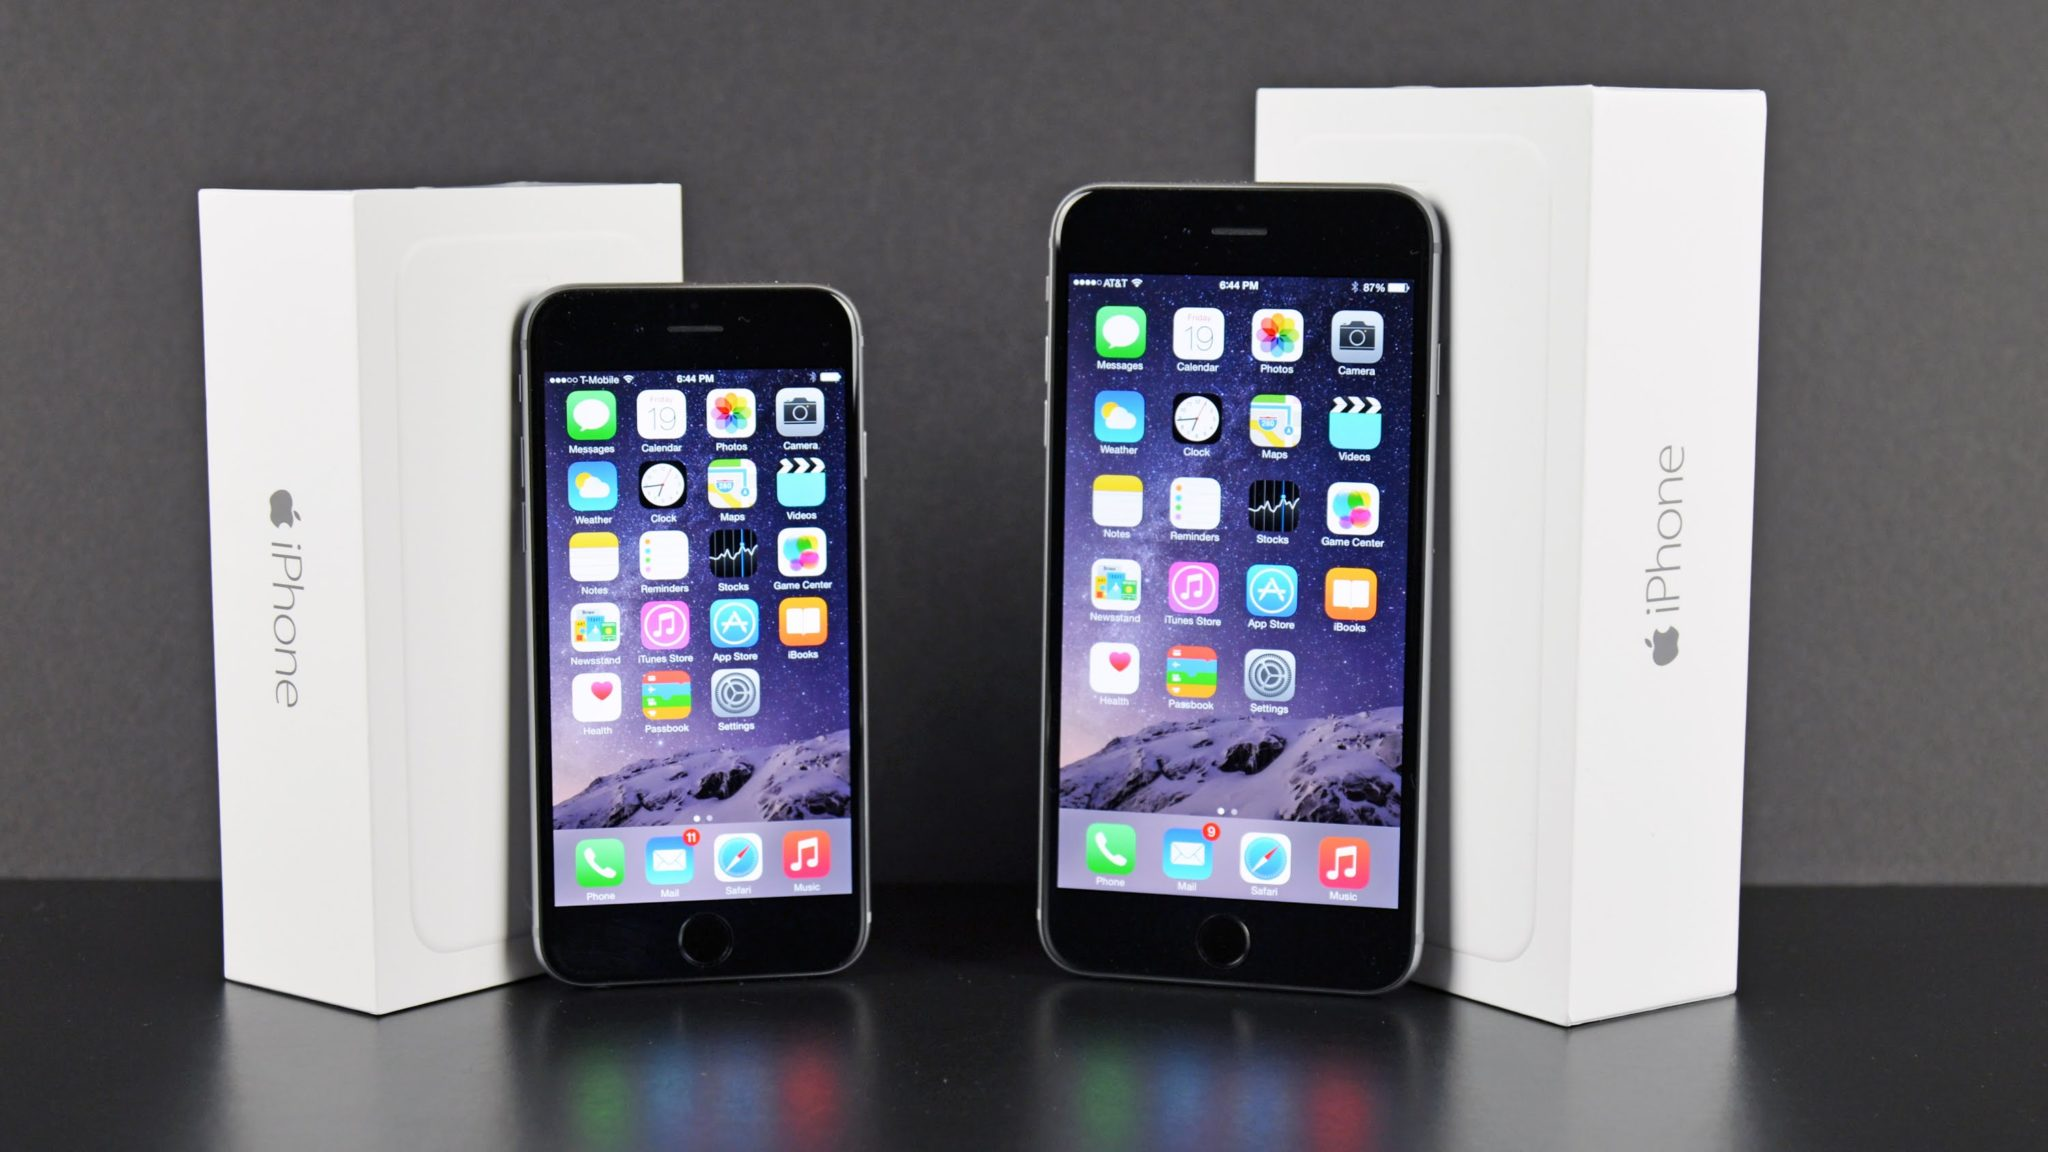 Perbandingan Bagus Mana HP iPhone 6S VS iPhone 6 Plus Segi